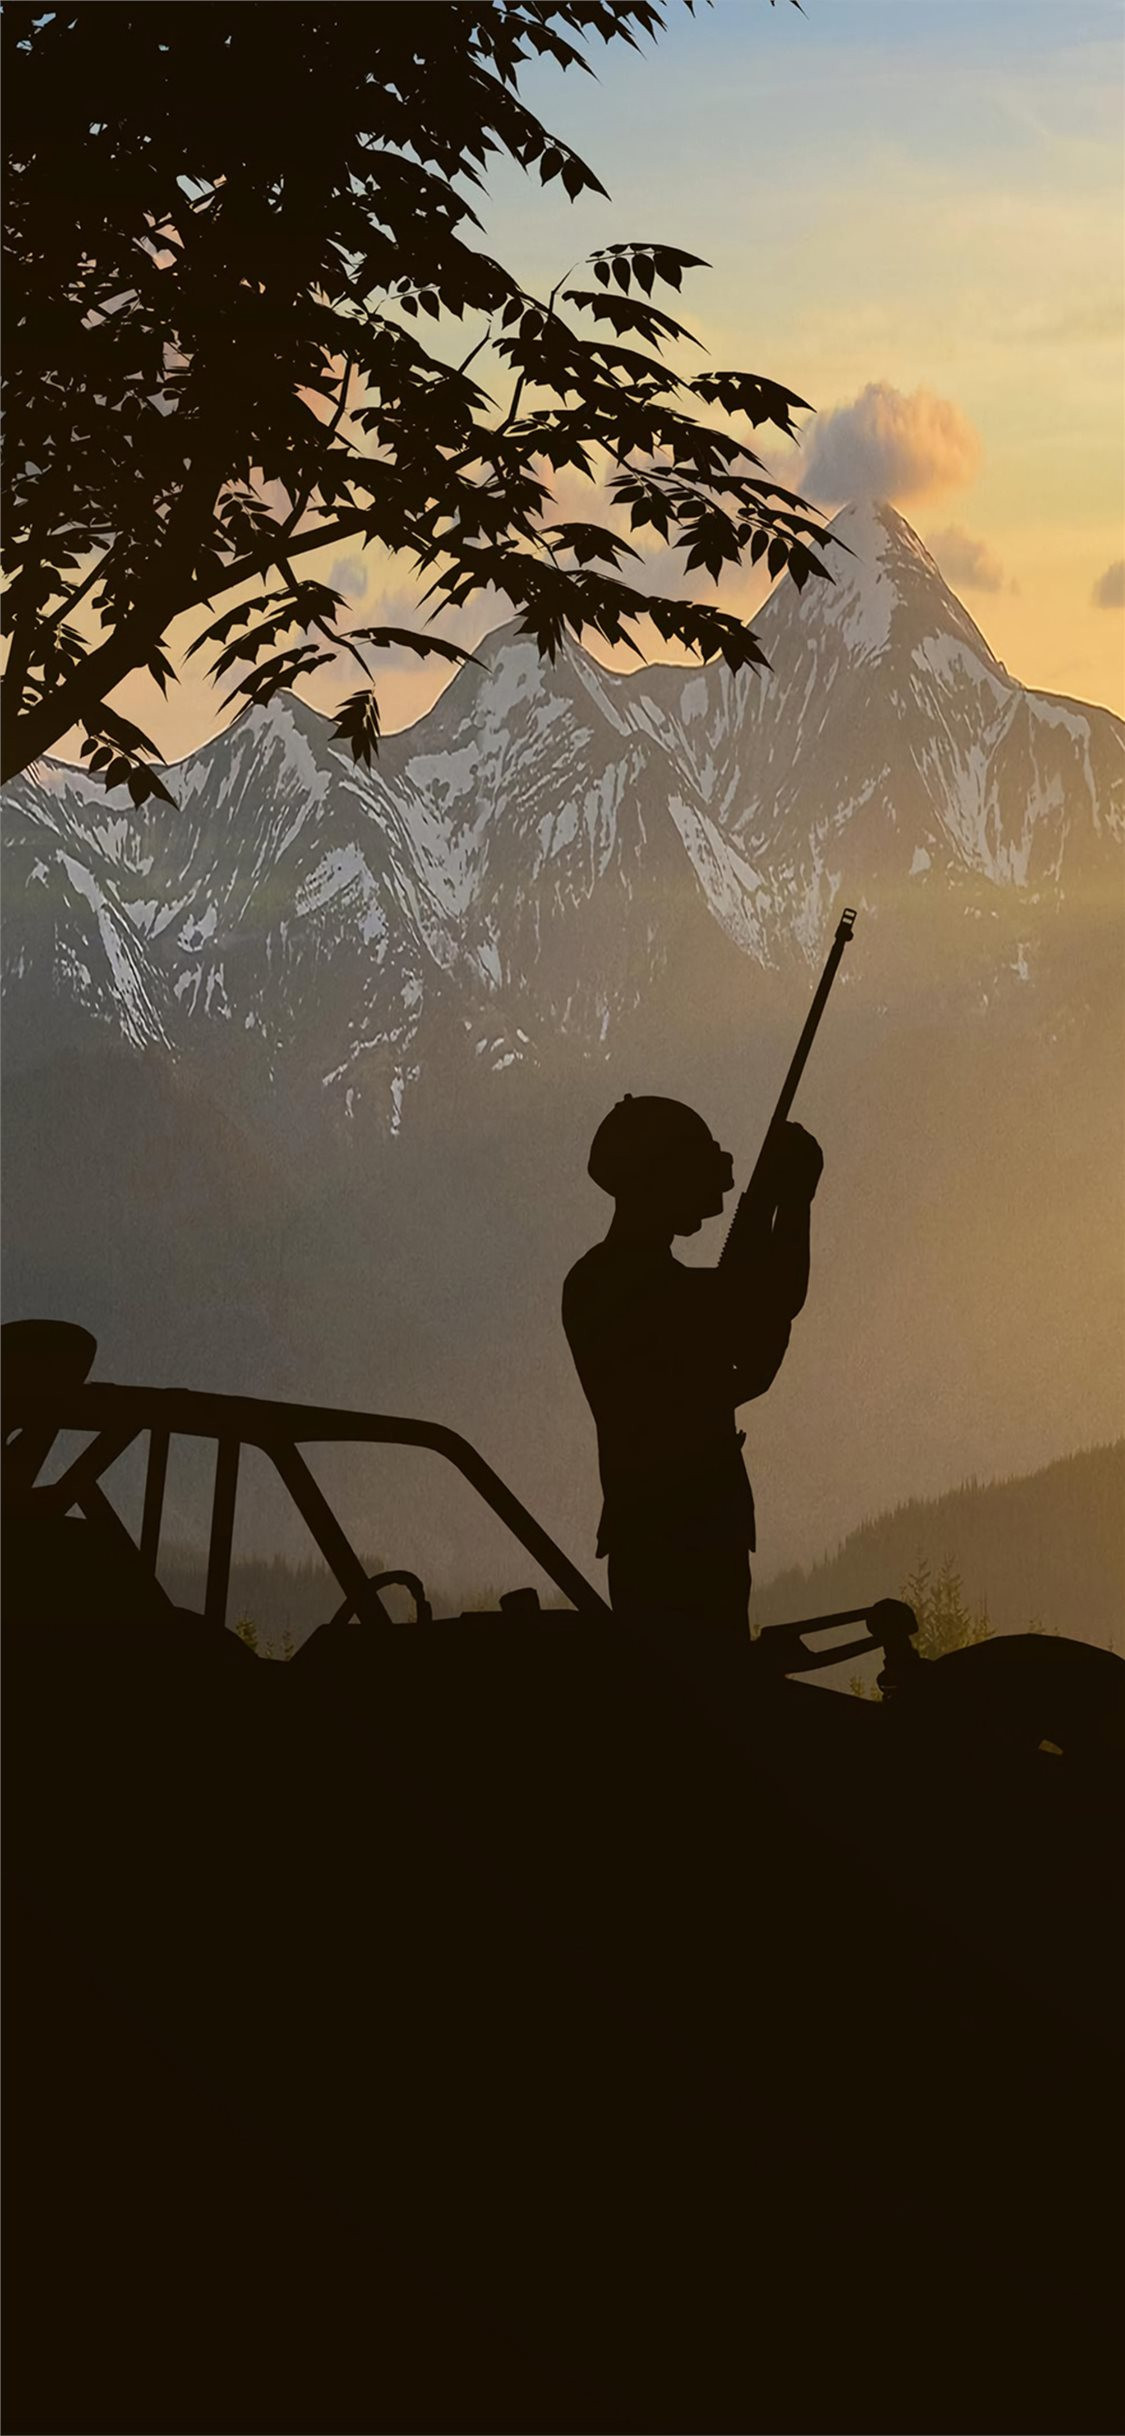 pubg silhouette 4k iPhone X Wallpapers Free Download